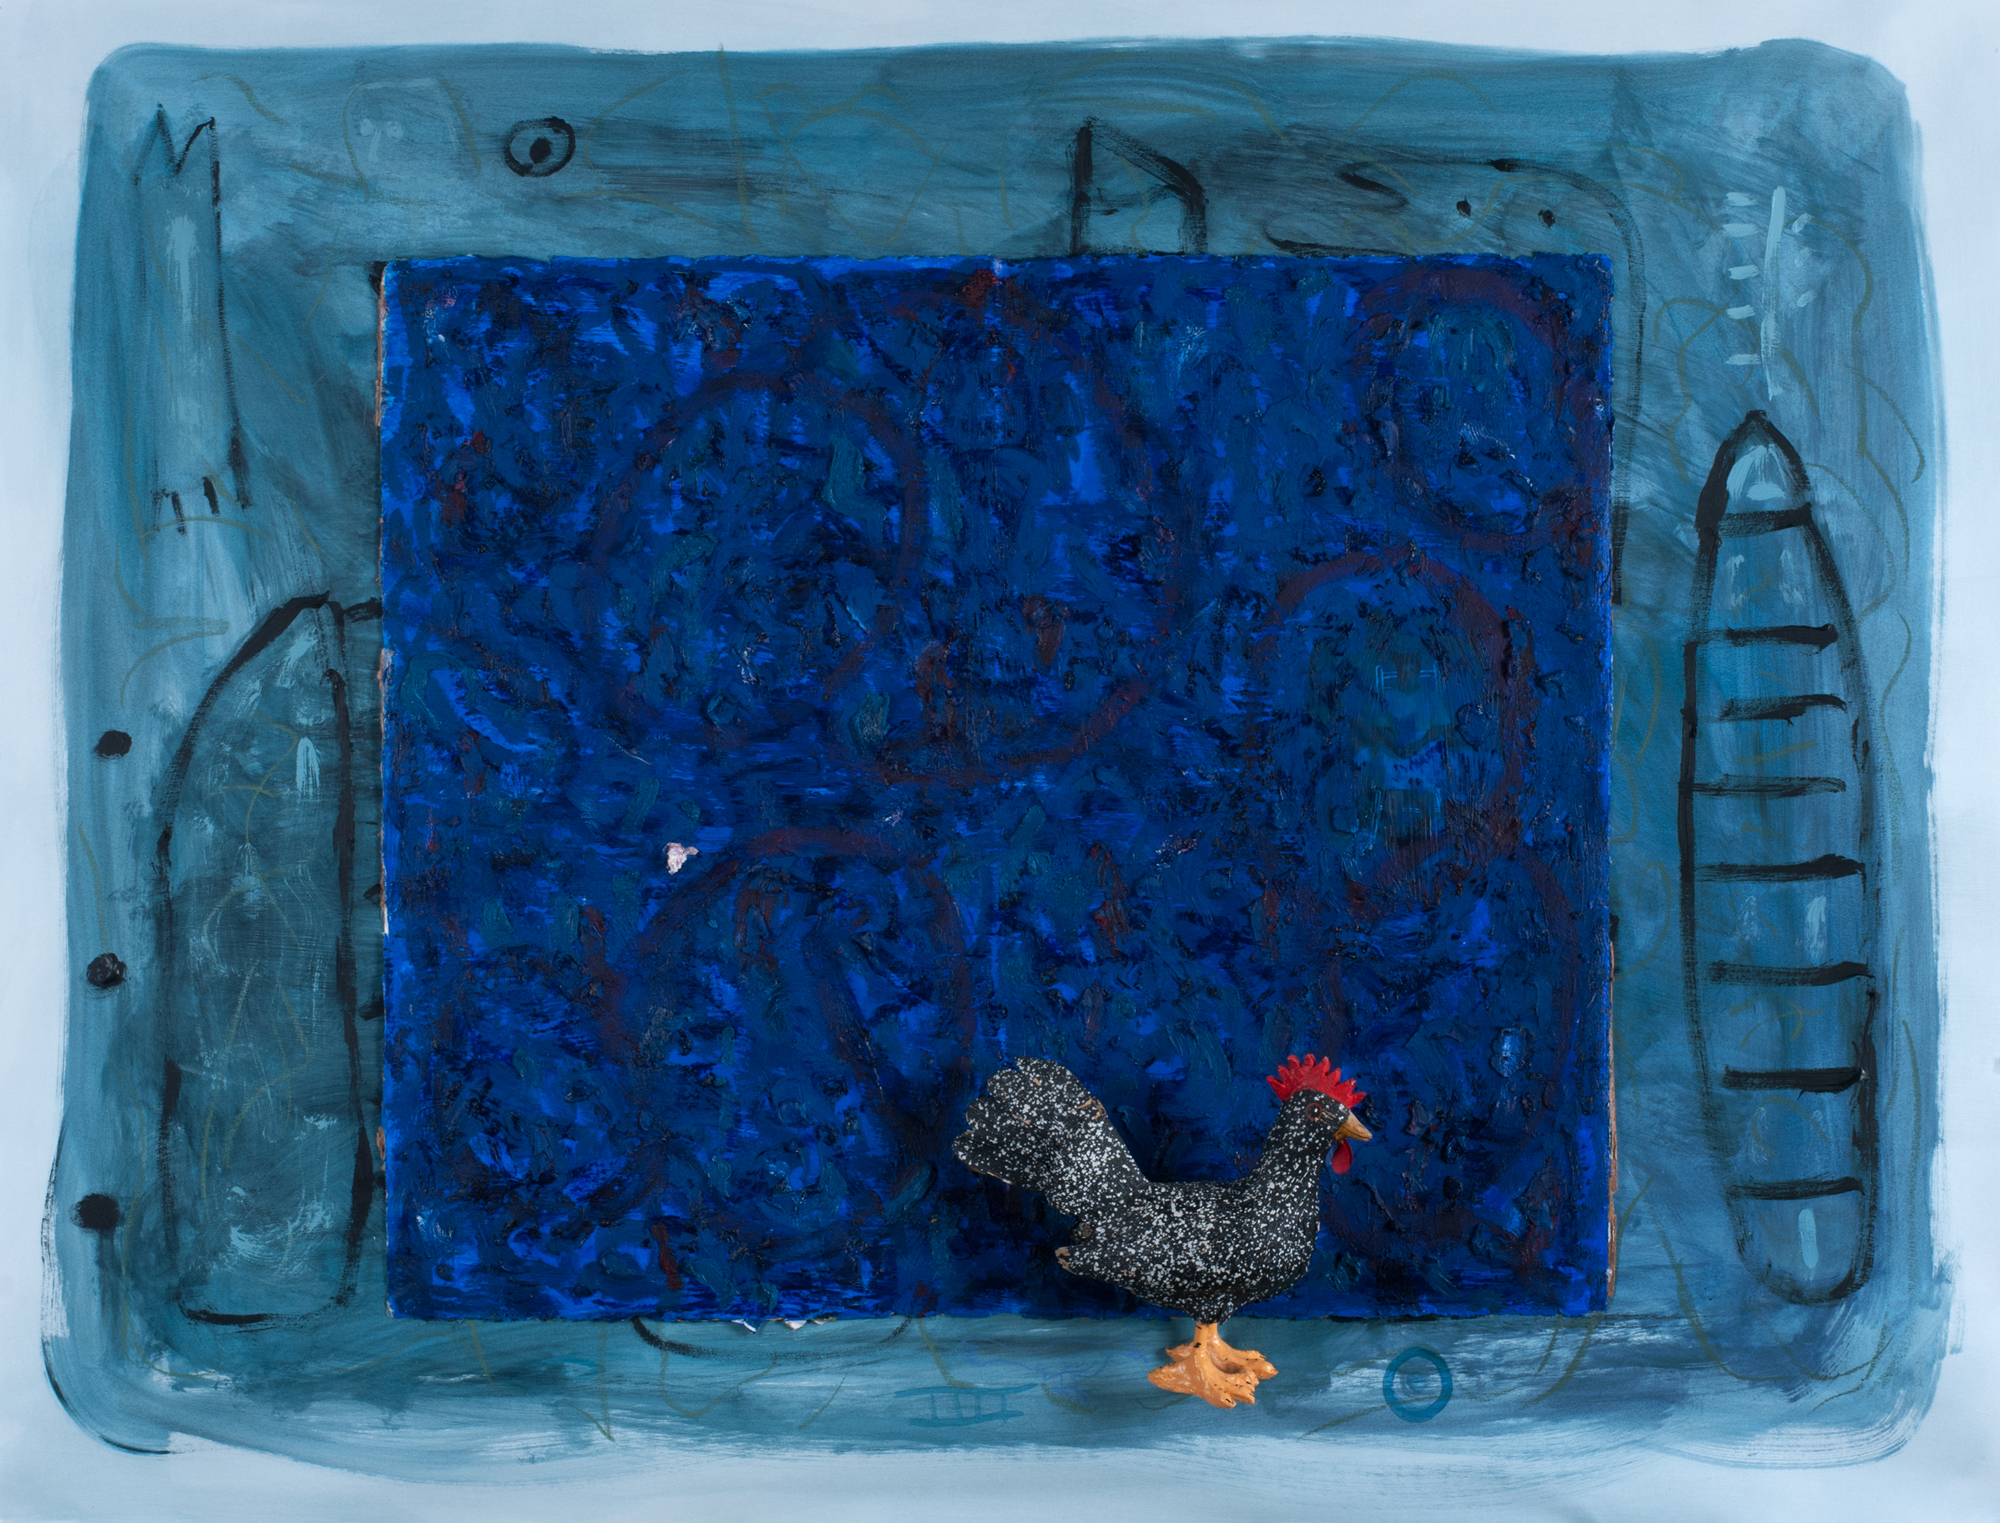 Floyd Newsum, Rooster in a blue Night, 2014, acrylic and oil on paper with collage element, 26 x 42 inches